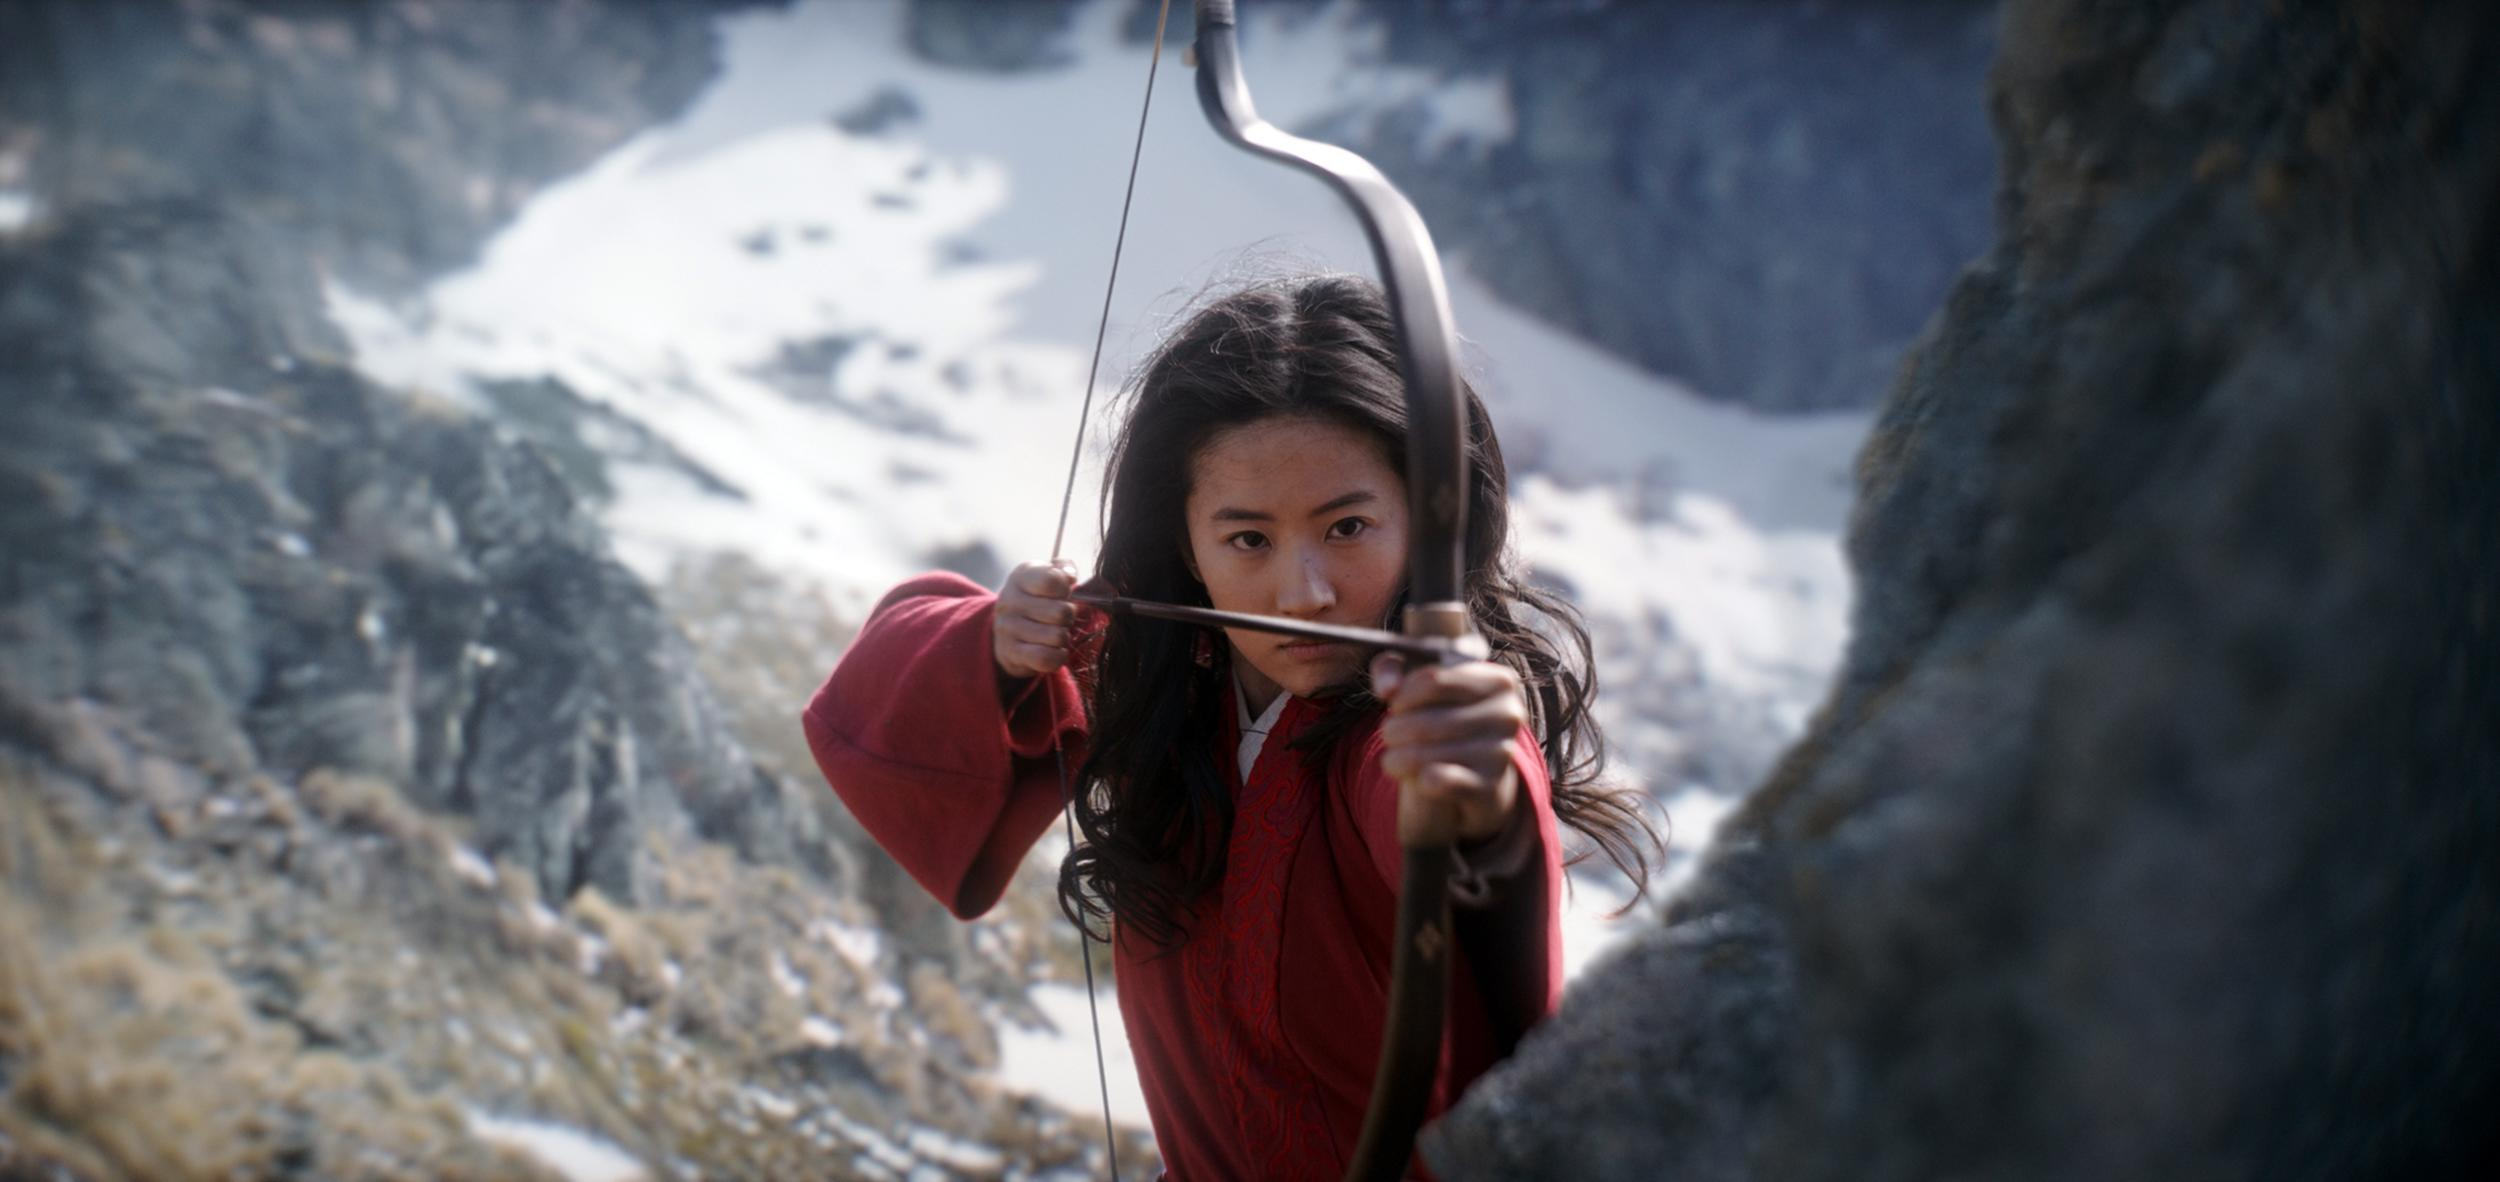 New 'Mulan' is a beautiful, empty remake that will disappoint everyone. Here's why.